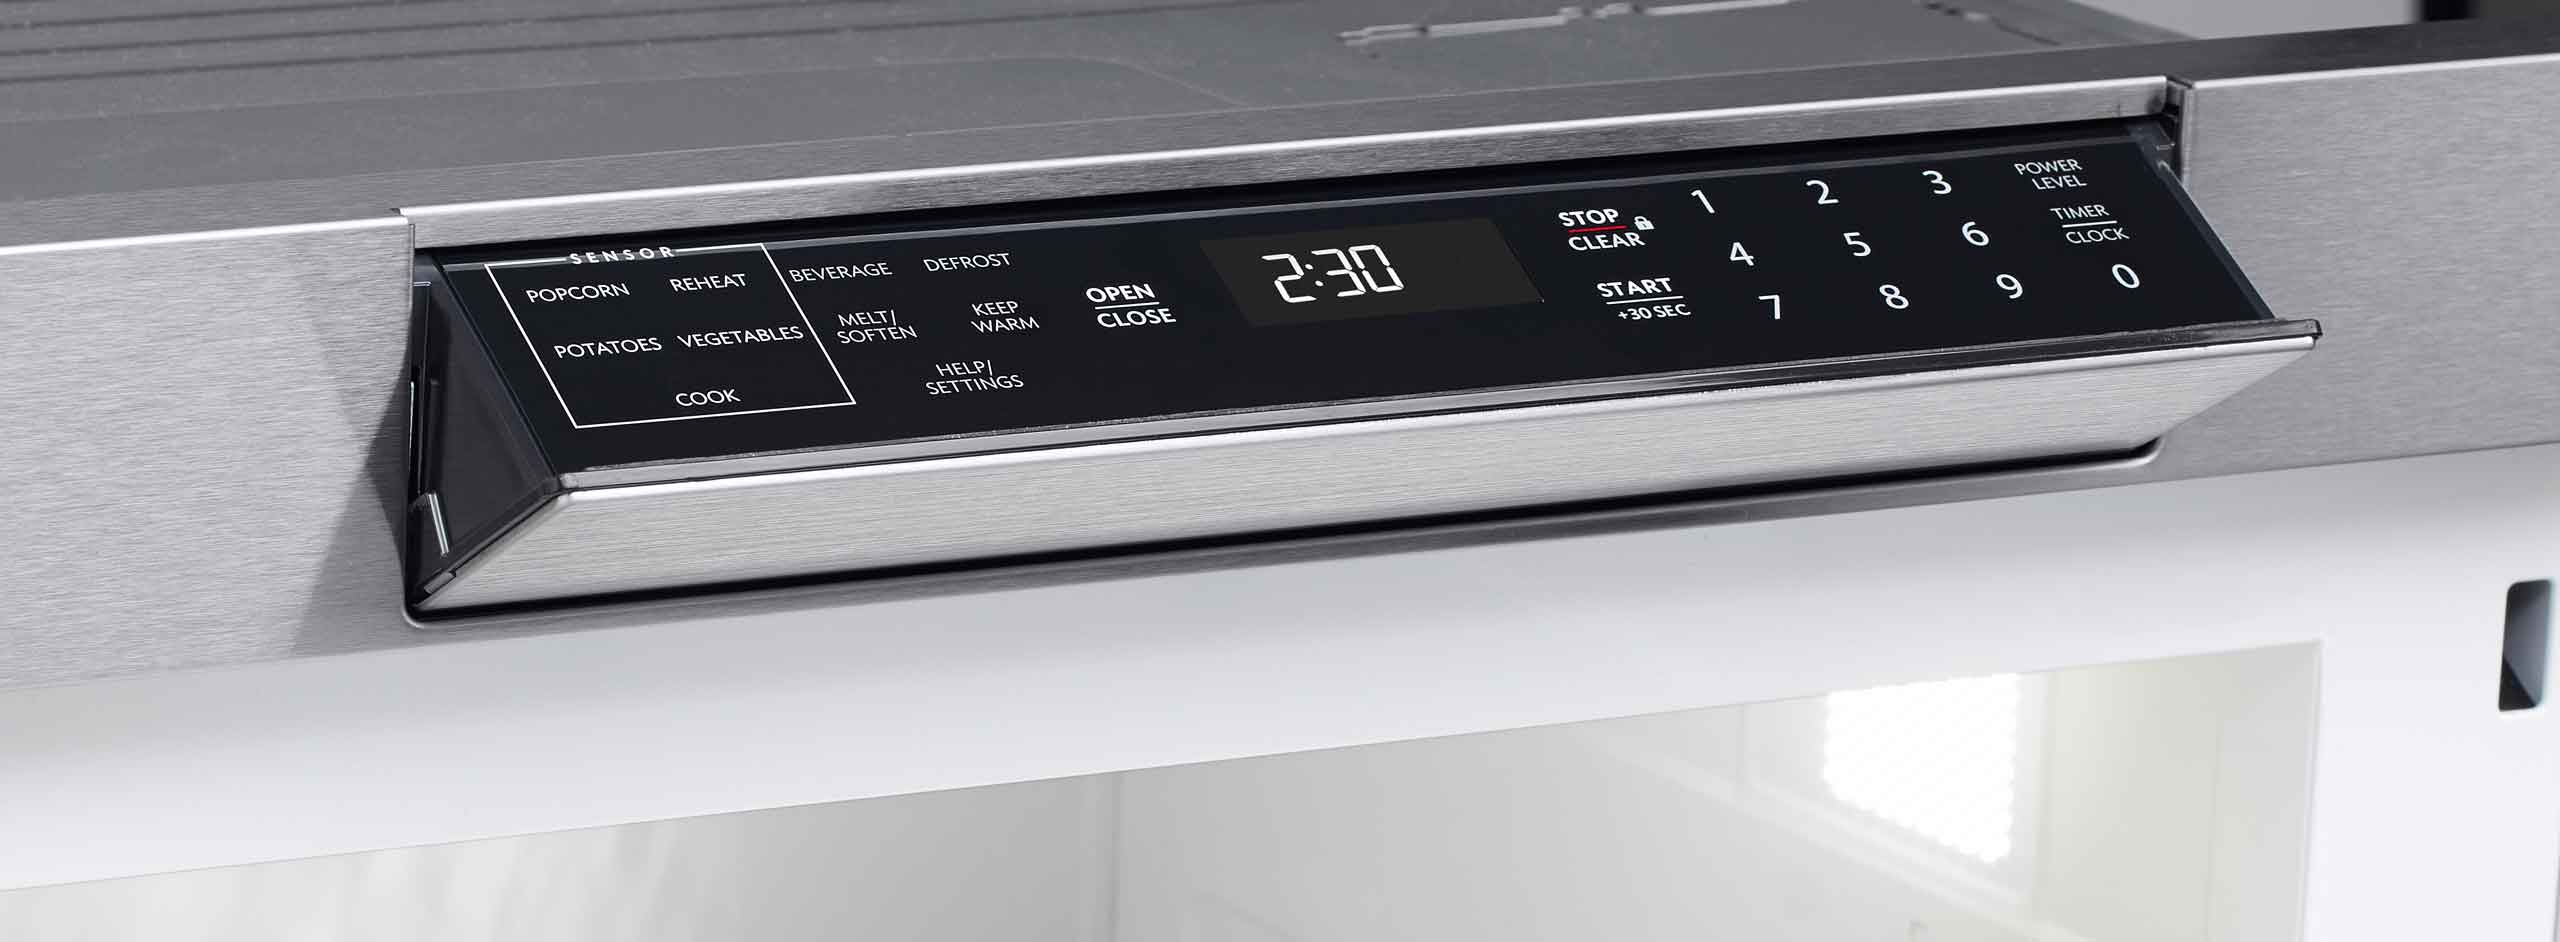 sharp smd3070as y 30 microwave drawer oven 30 ovens rh m sharpusa com Five Star Stoves Parts Five Star Range